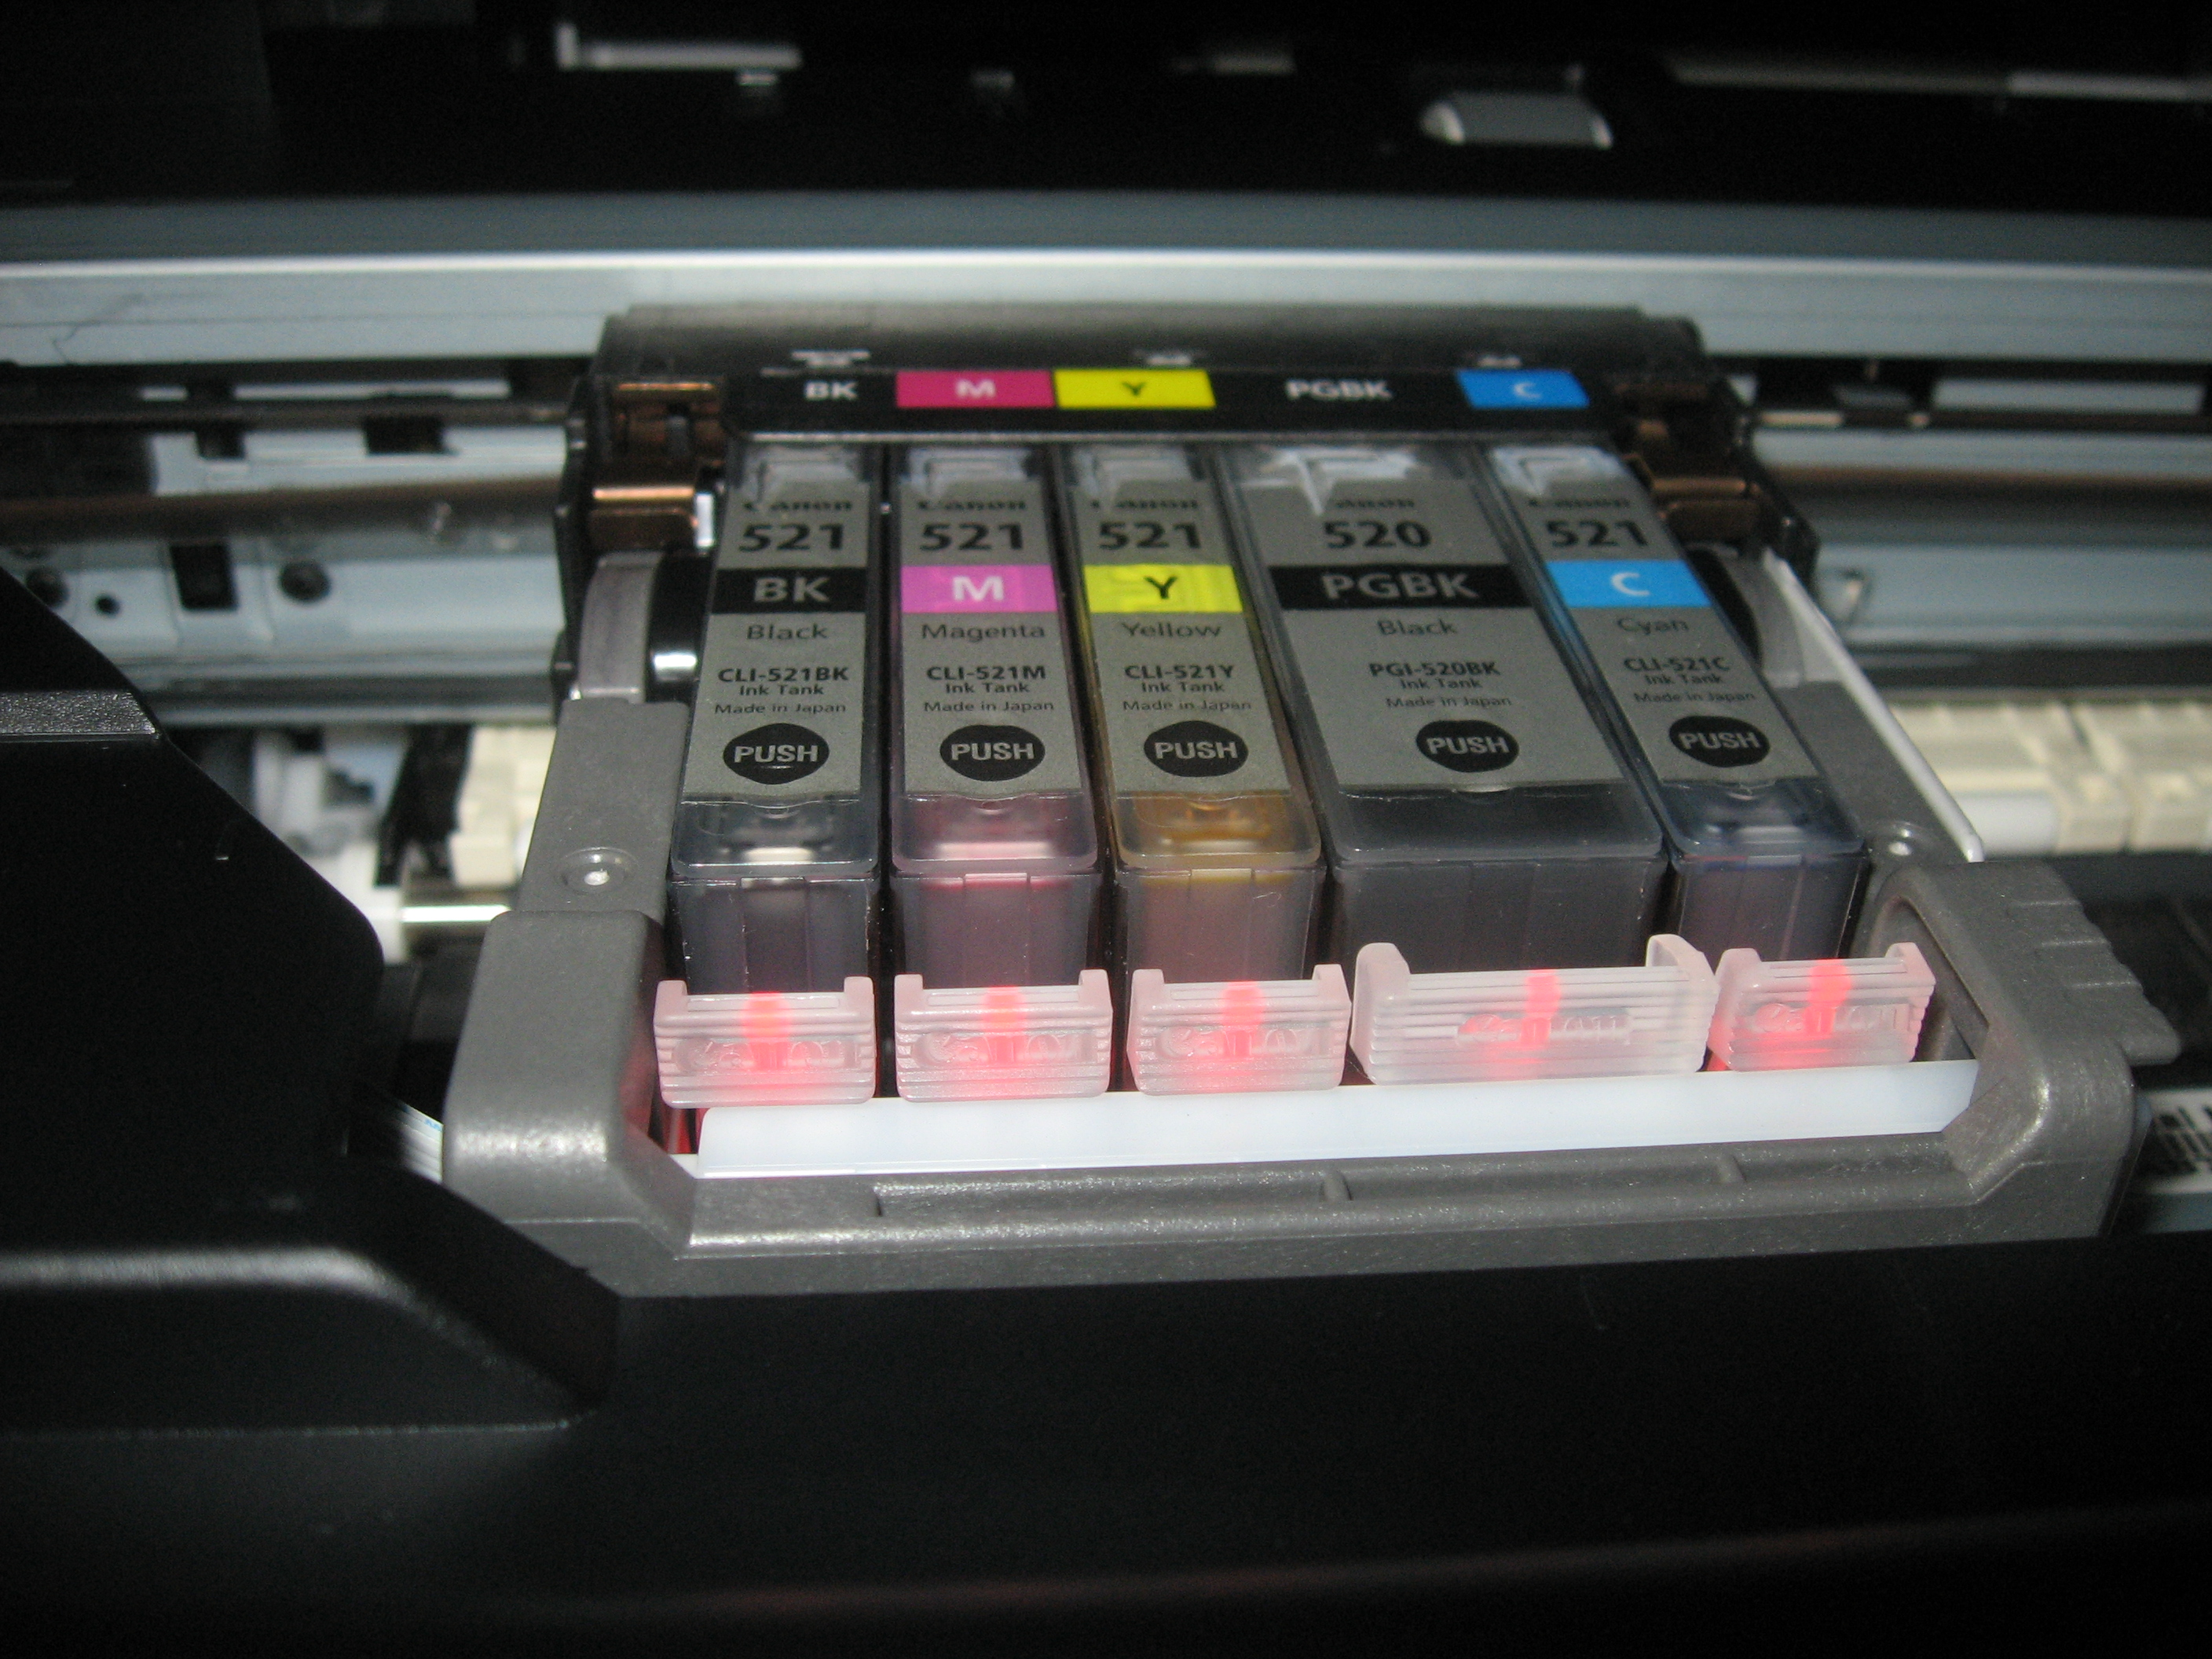 5 Separate ink cartridges